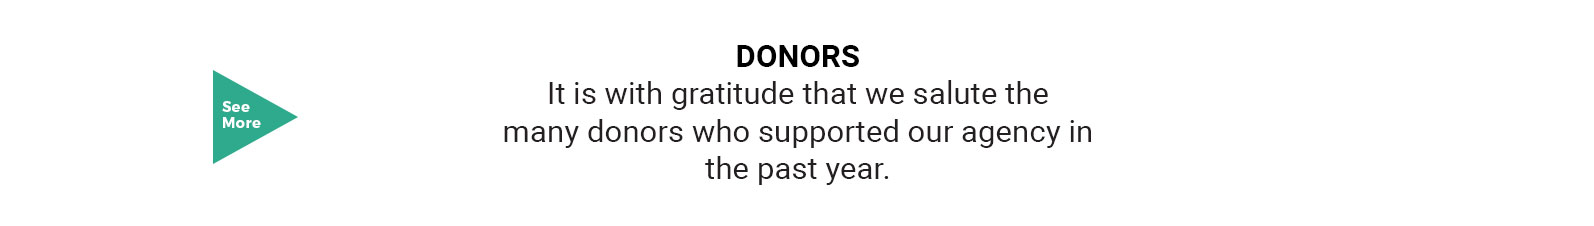 Our Donors